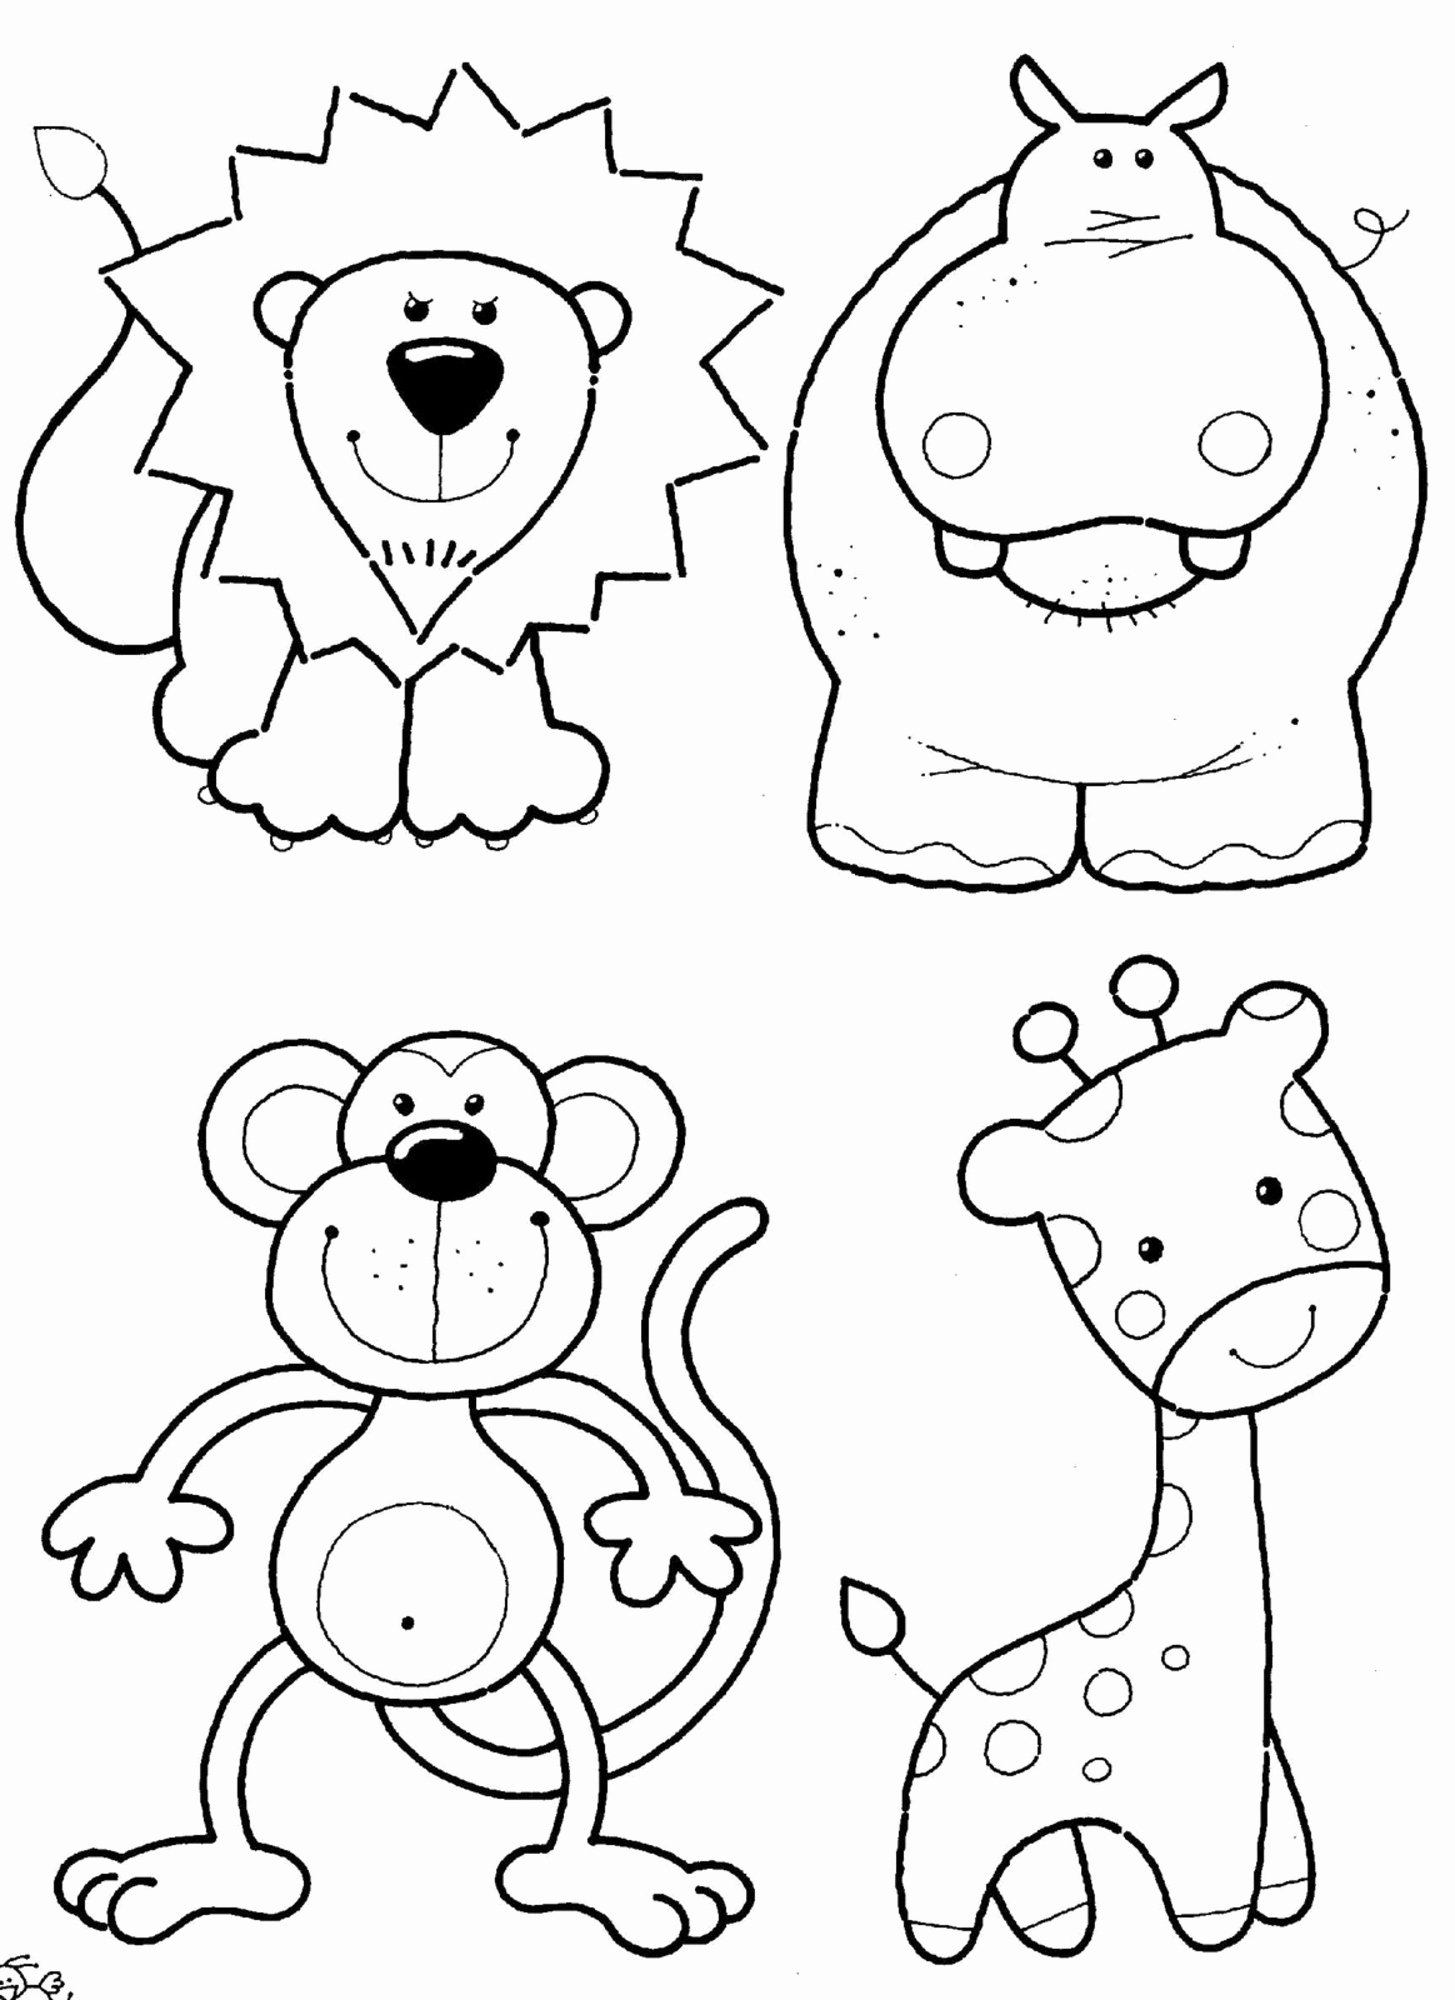 Printable Animal Worksheets for Preschoolers Lovely Coloring Book Cute Animals Zoo Fabulous for themed Math